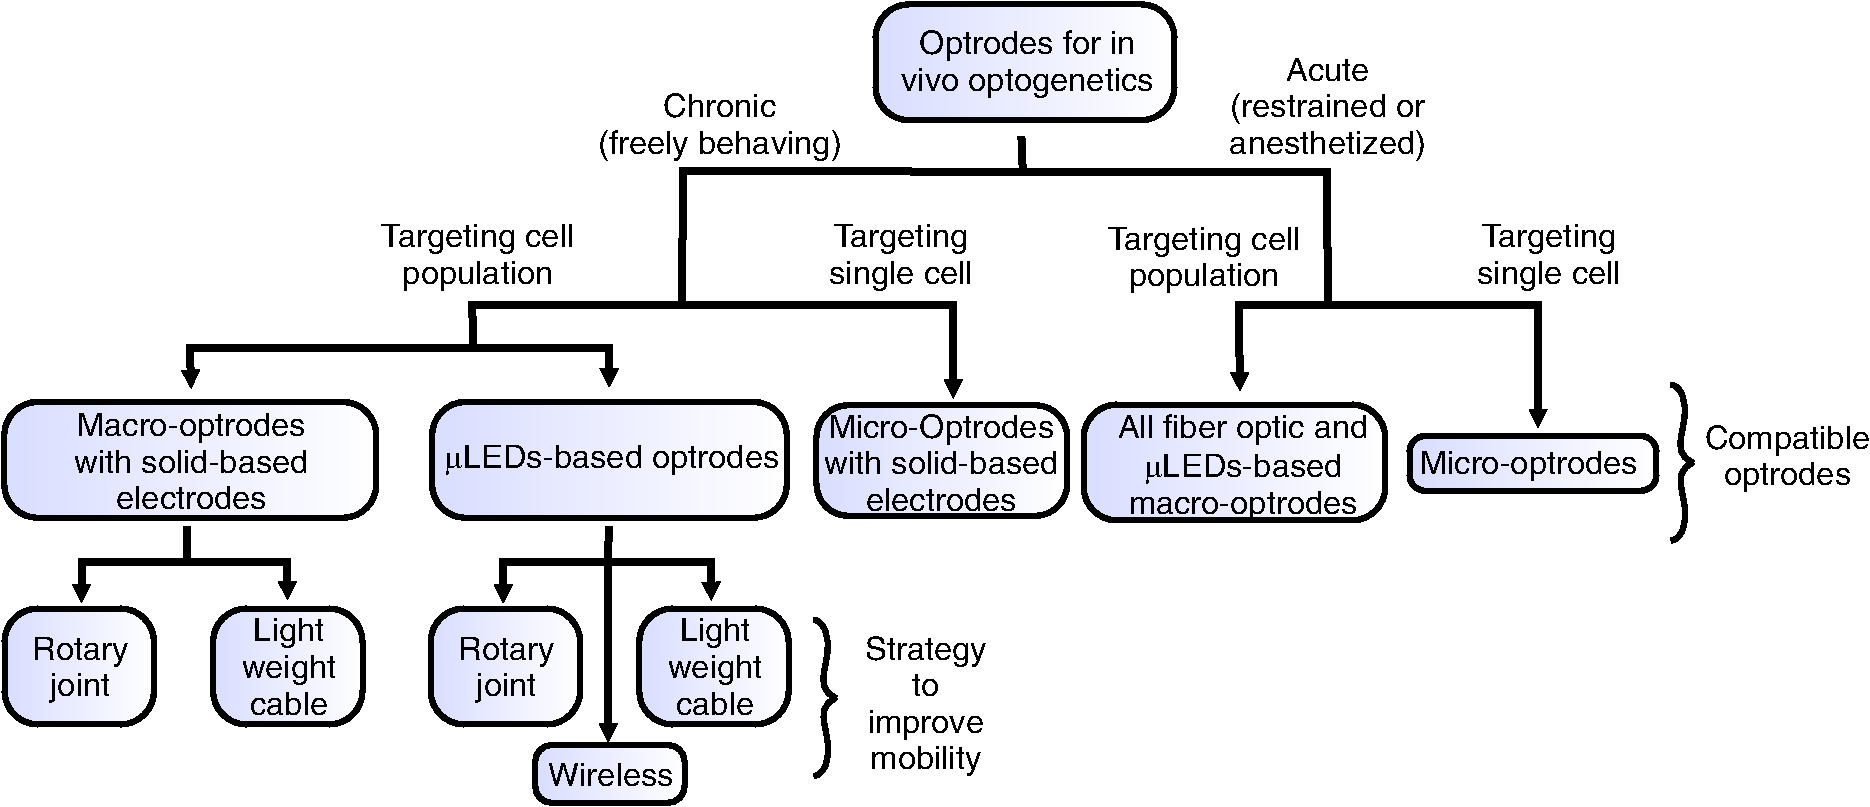 Optrodes for combined optogenetics and electrophysiology in live animals